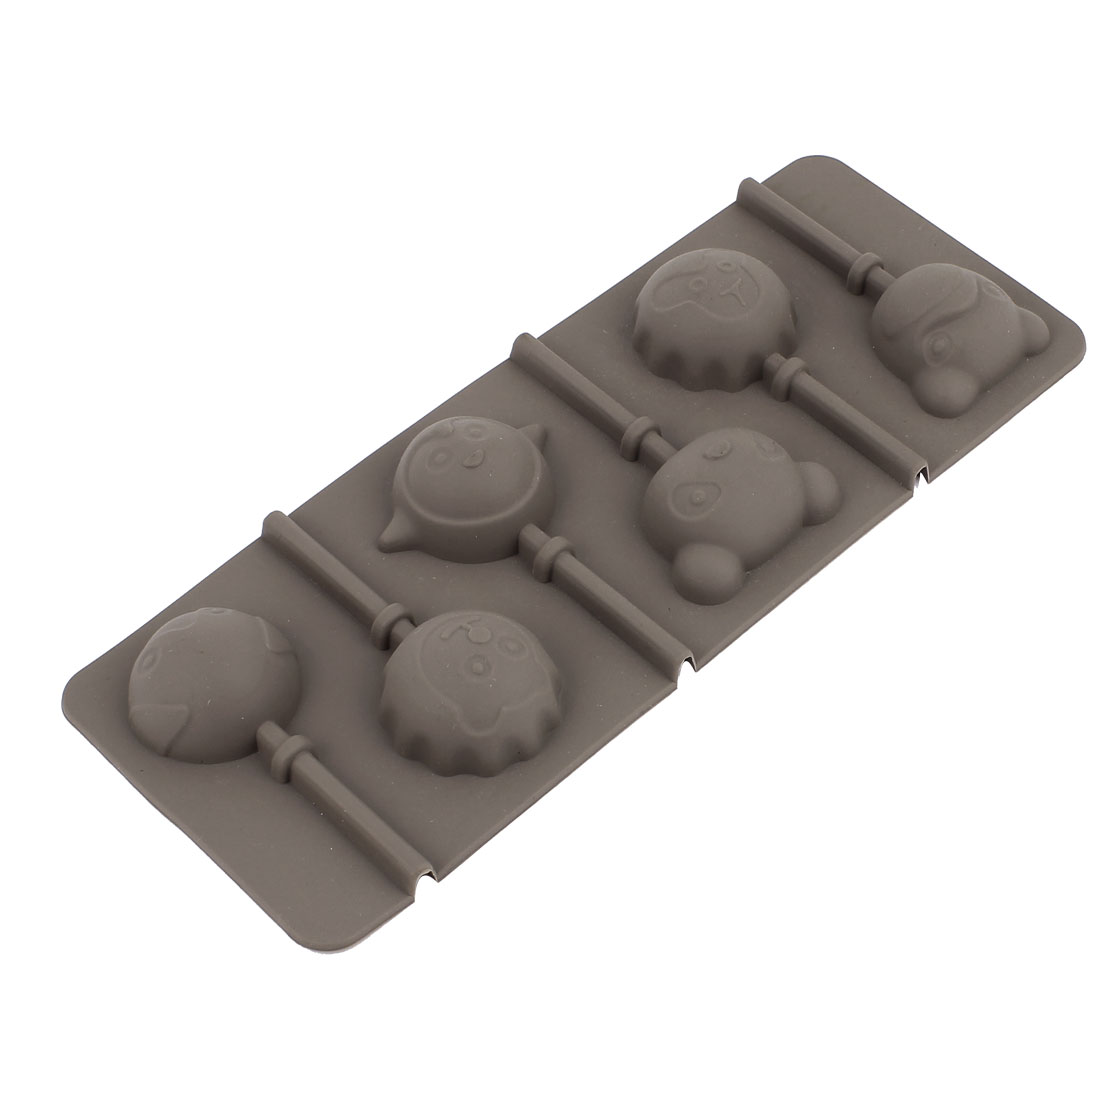 Silicone Cake Decorating Mould Candy Cookie Chocolate Baking Mold